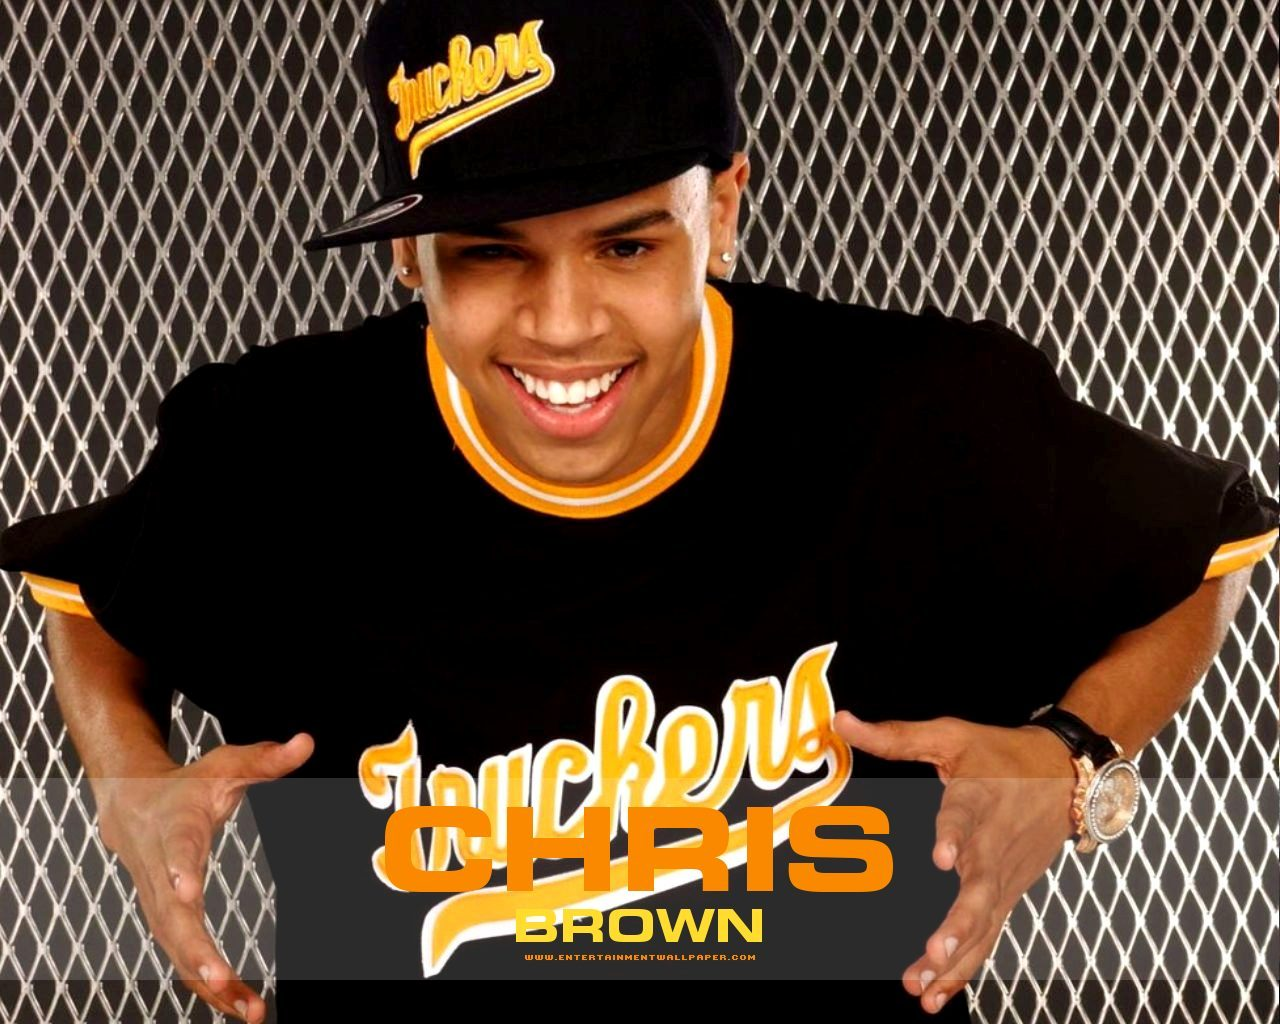 Chris Brown images Chris Brown HD wallpaper and background photos